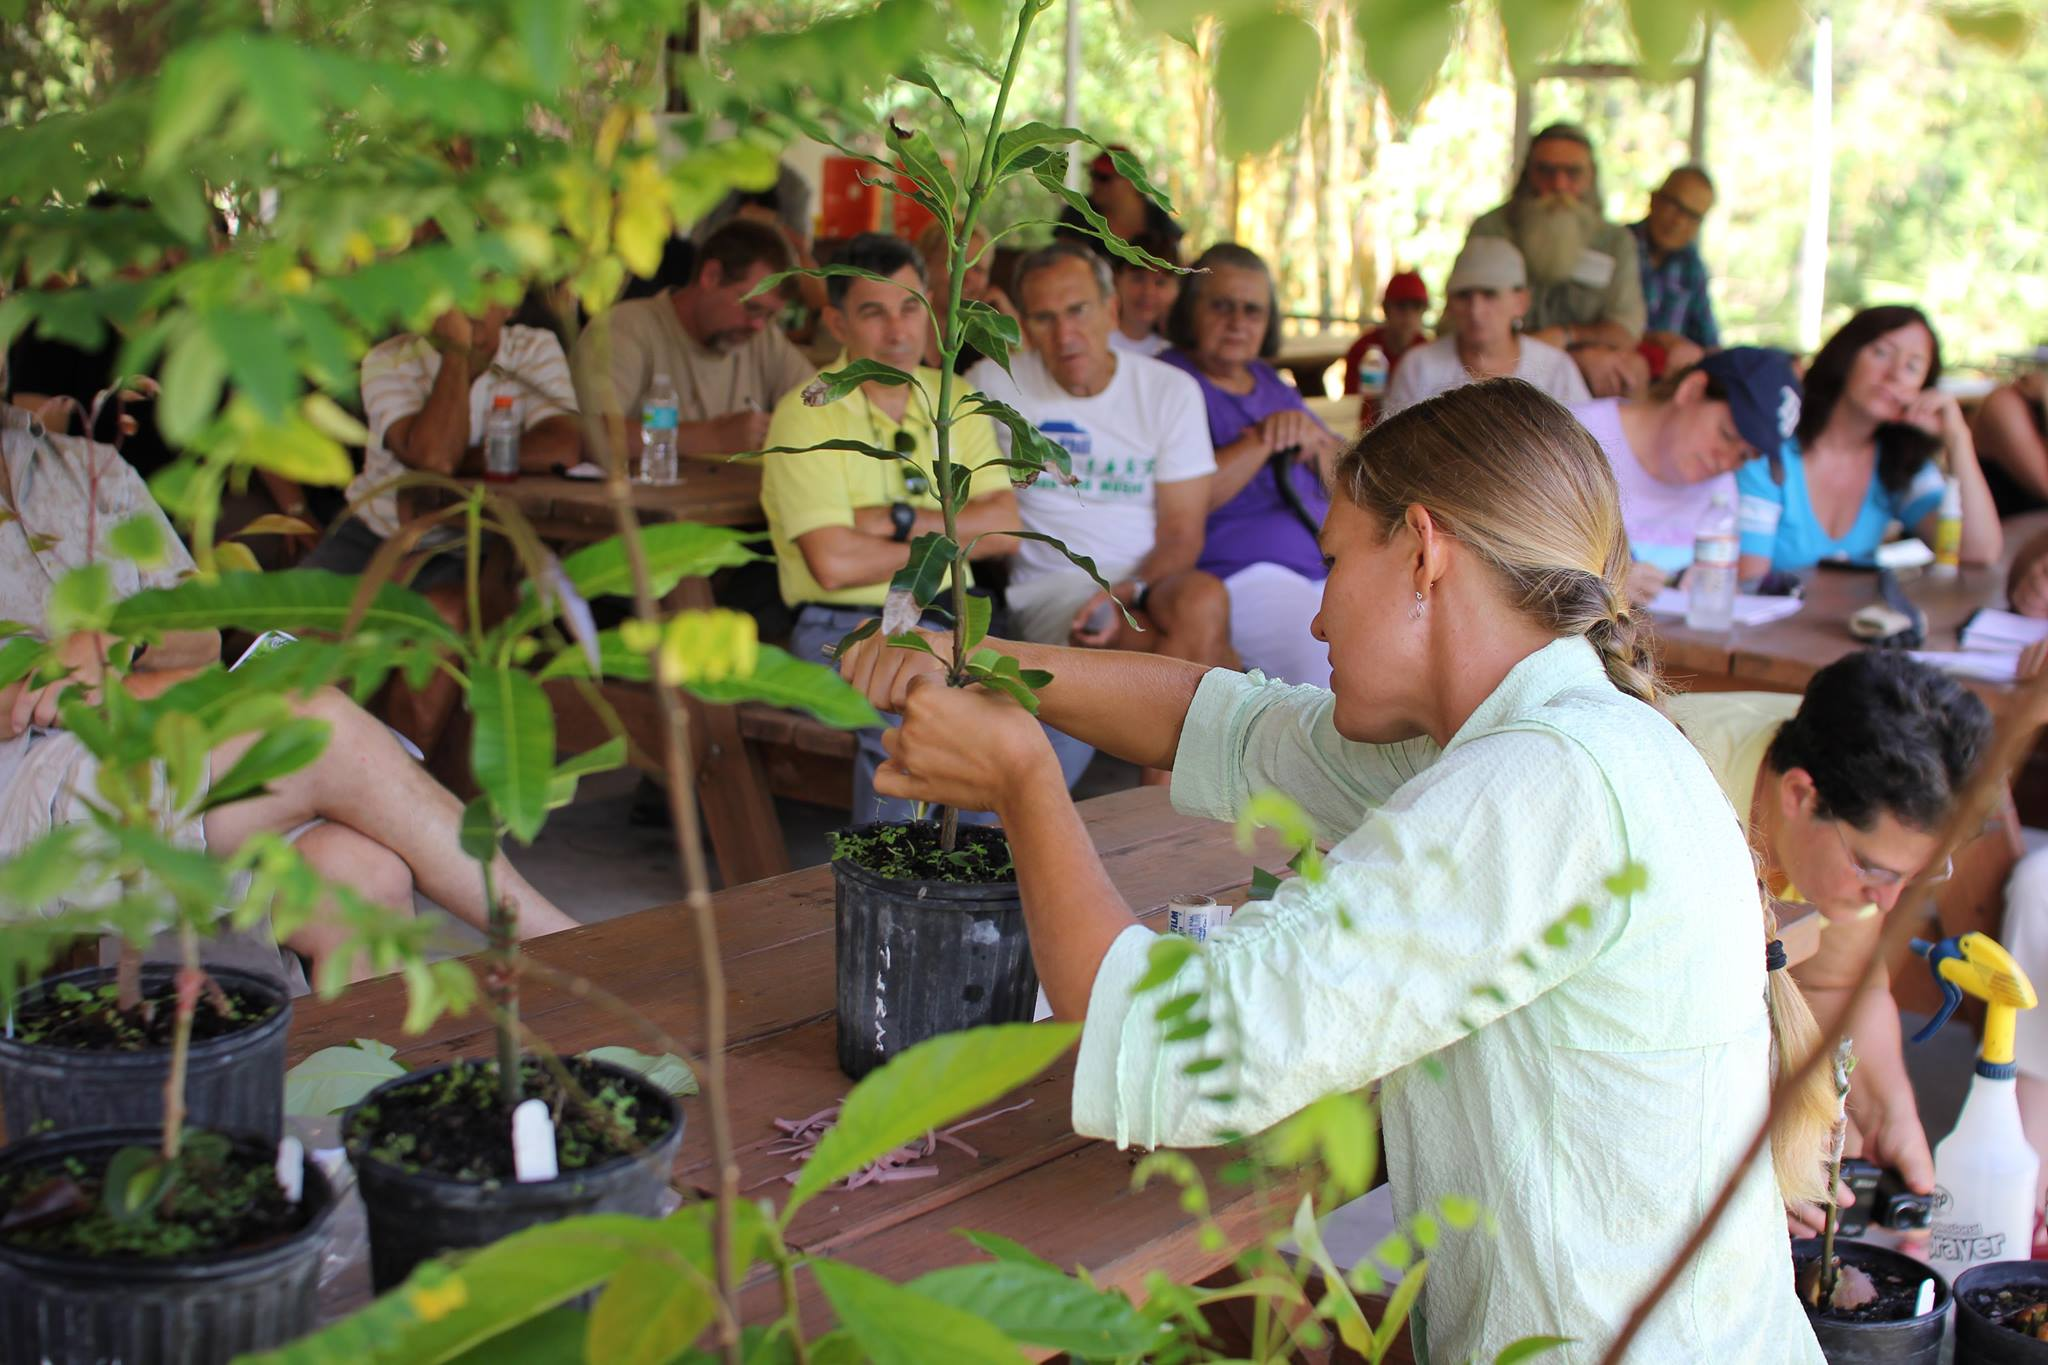 Marcie Dallmann demonstrates grafting methods for producing healthy tropical fruit trees. ECHO seminars benefit thousands per year with sustainable agriculture techniques.